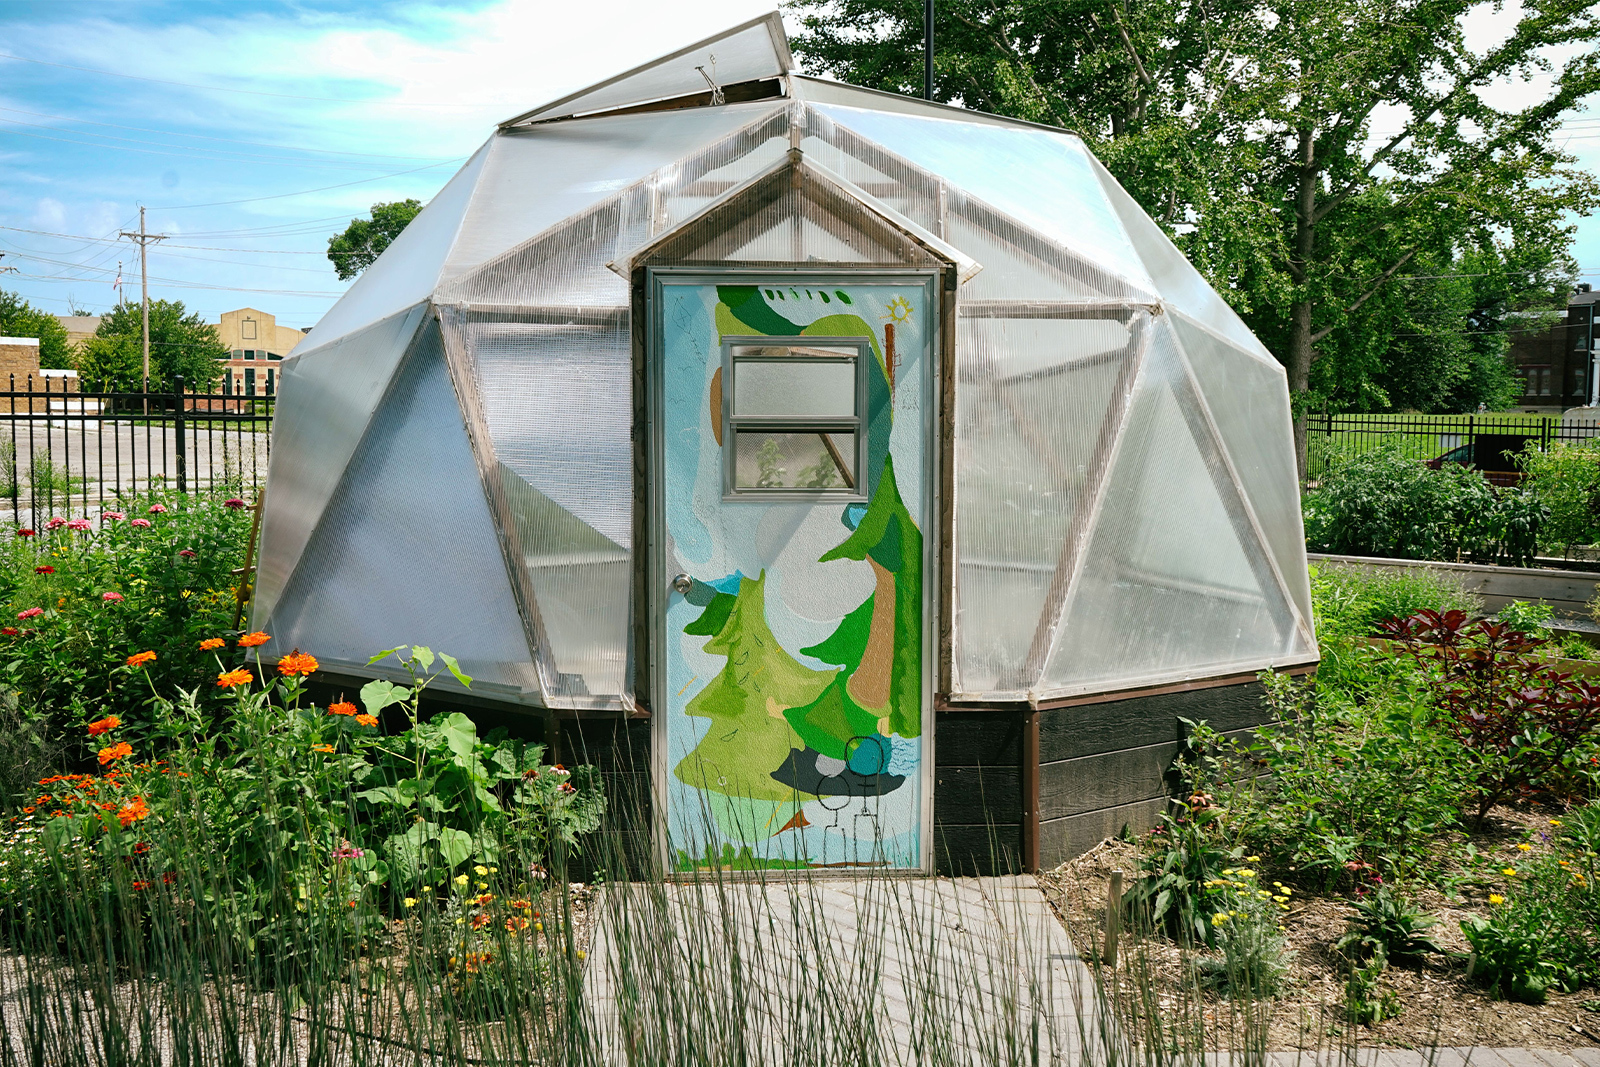 Abundance garden - photo of geodesic dome in Union garden. The garden is blooming with flowers and grasses and the door of the dome is painted with a bright, abstract nature scene.